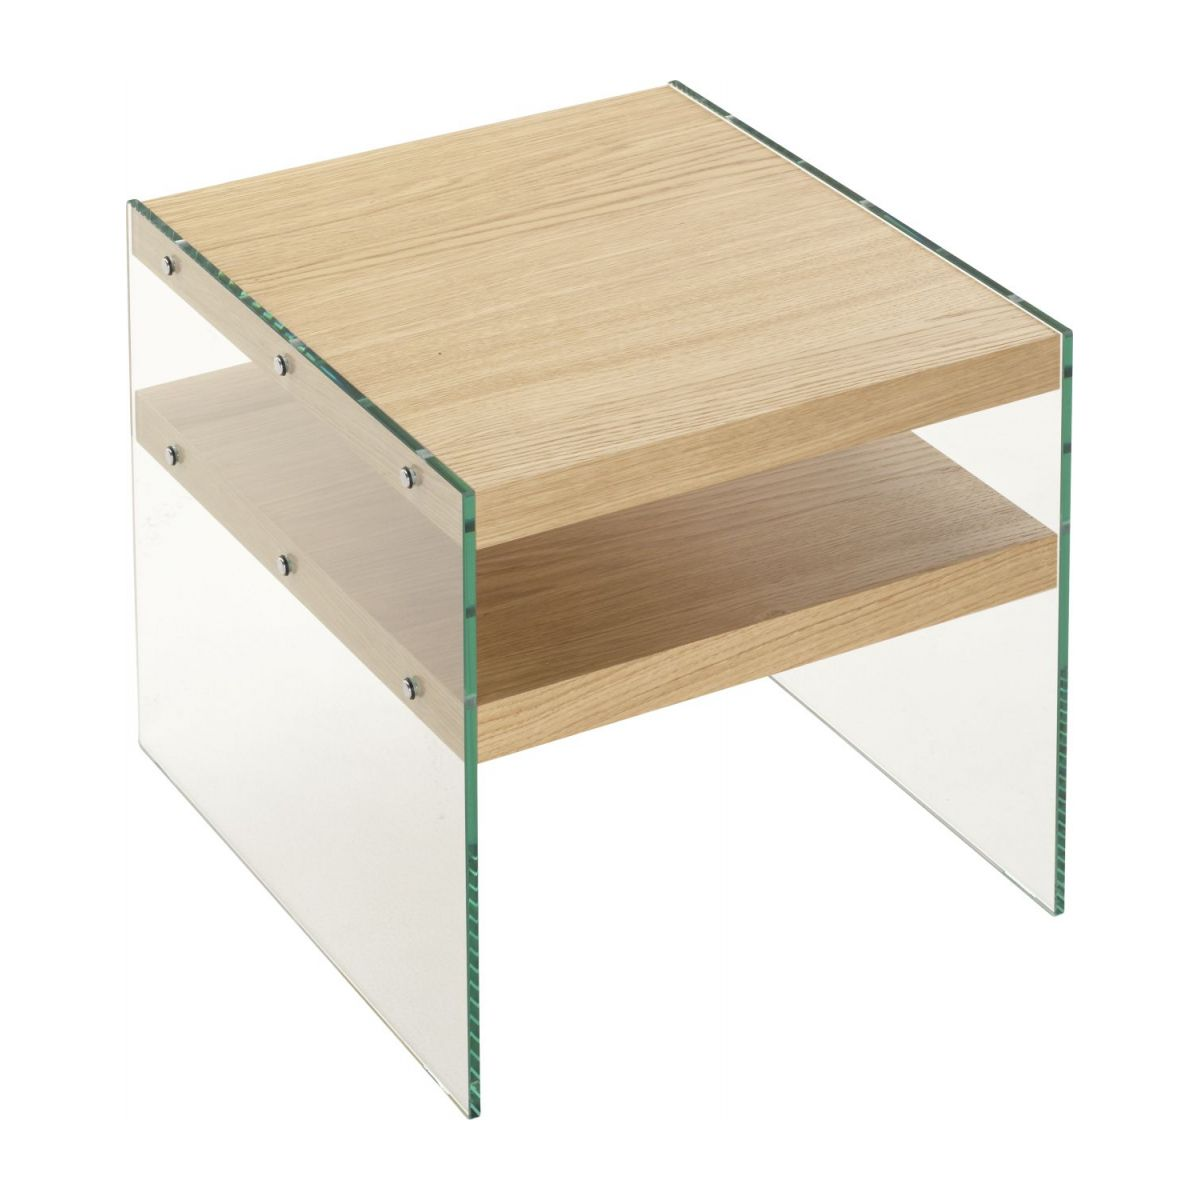 Table D Apoint Elegance Tables D 39appoint Naturel Bois Habitat